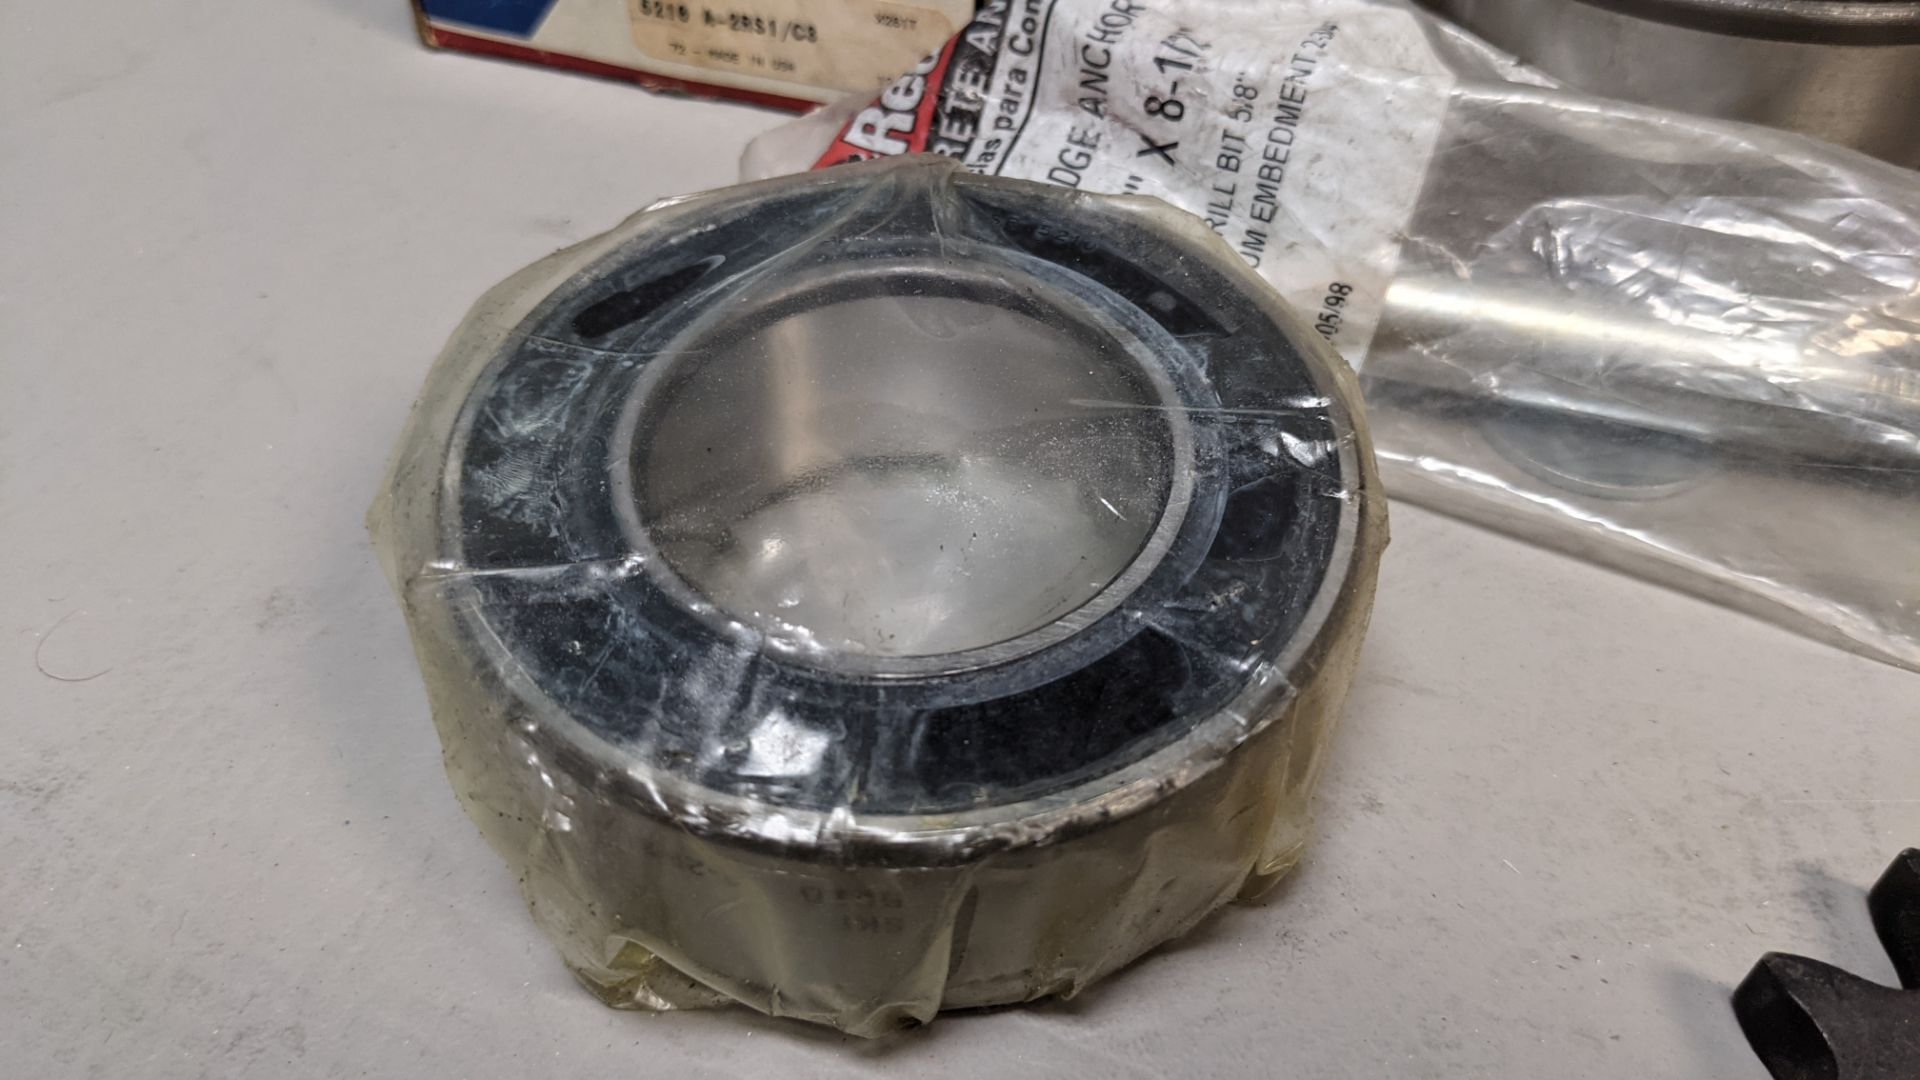 LOT F OBEARINGS AND SPROCKETS - Image 6 of 7